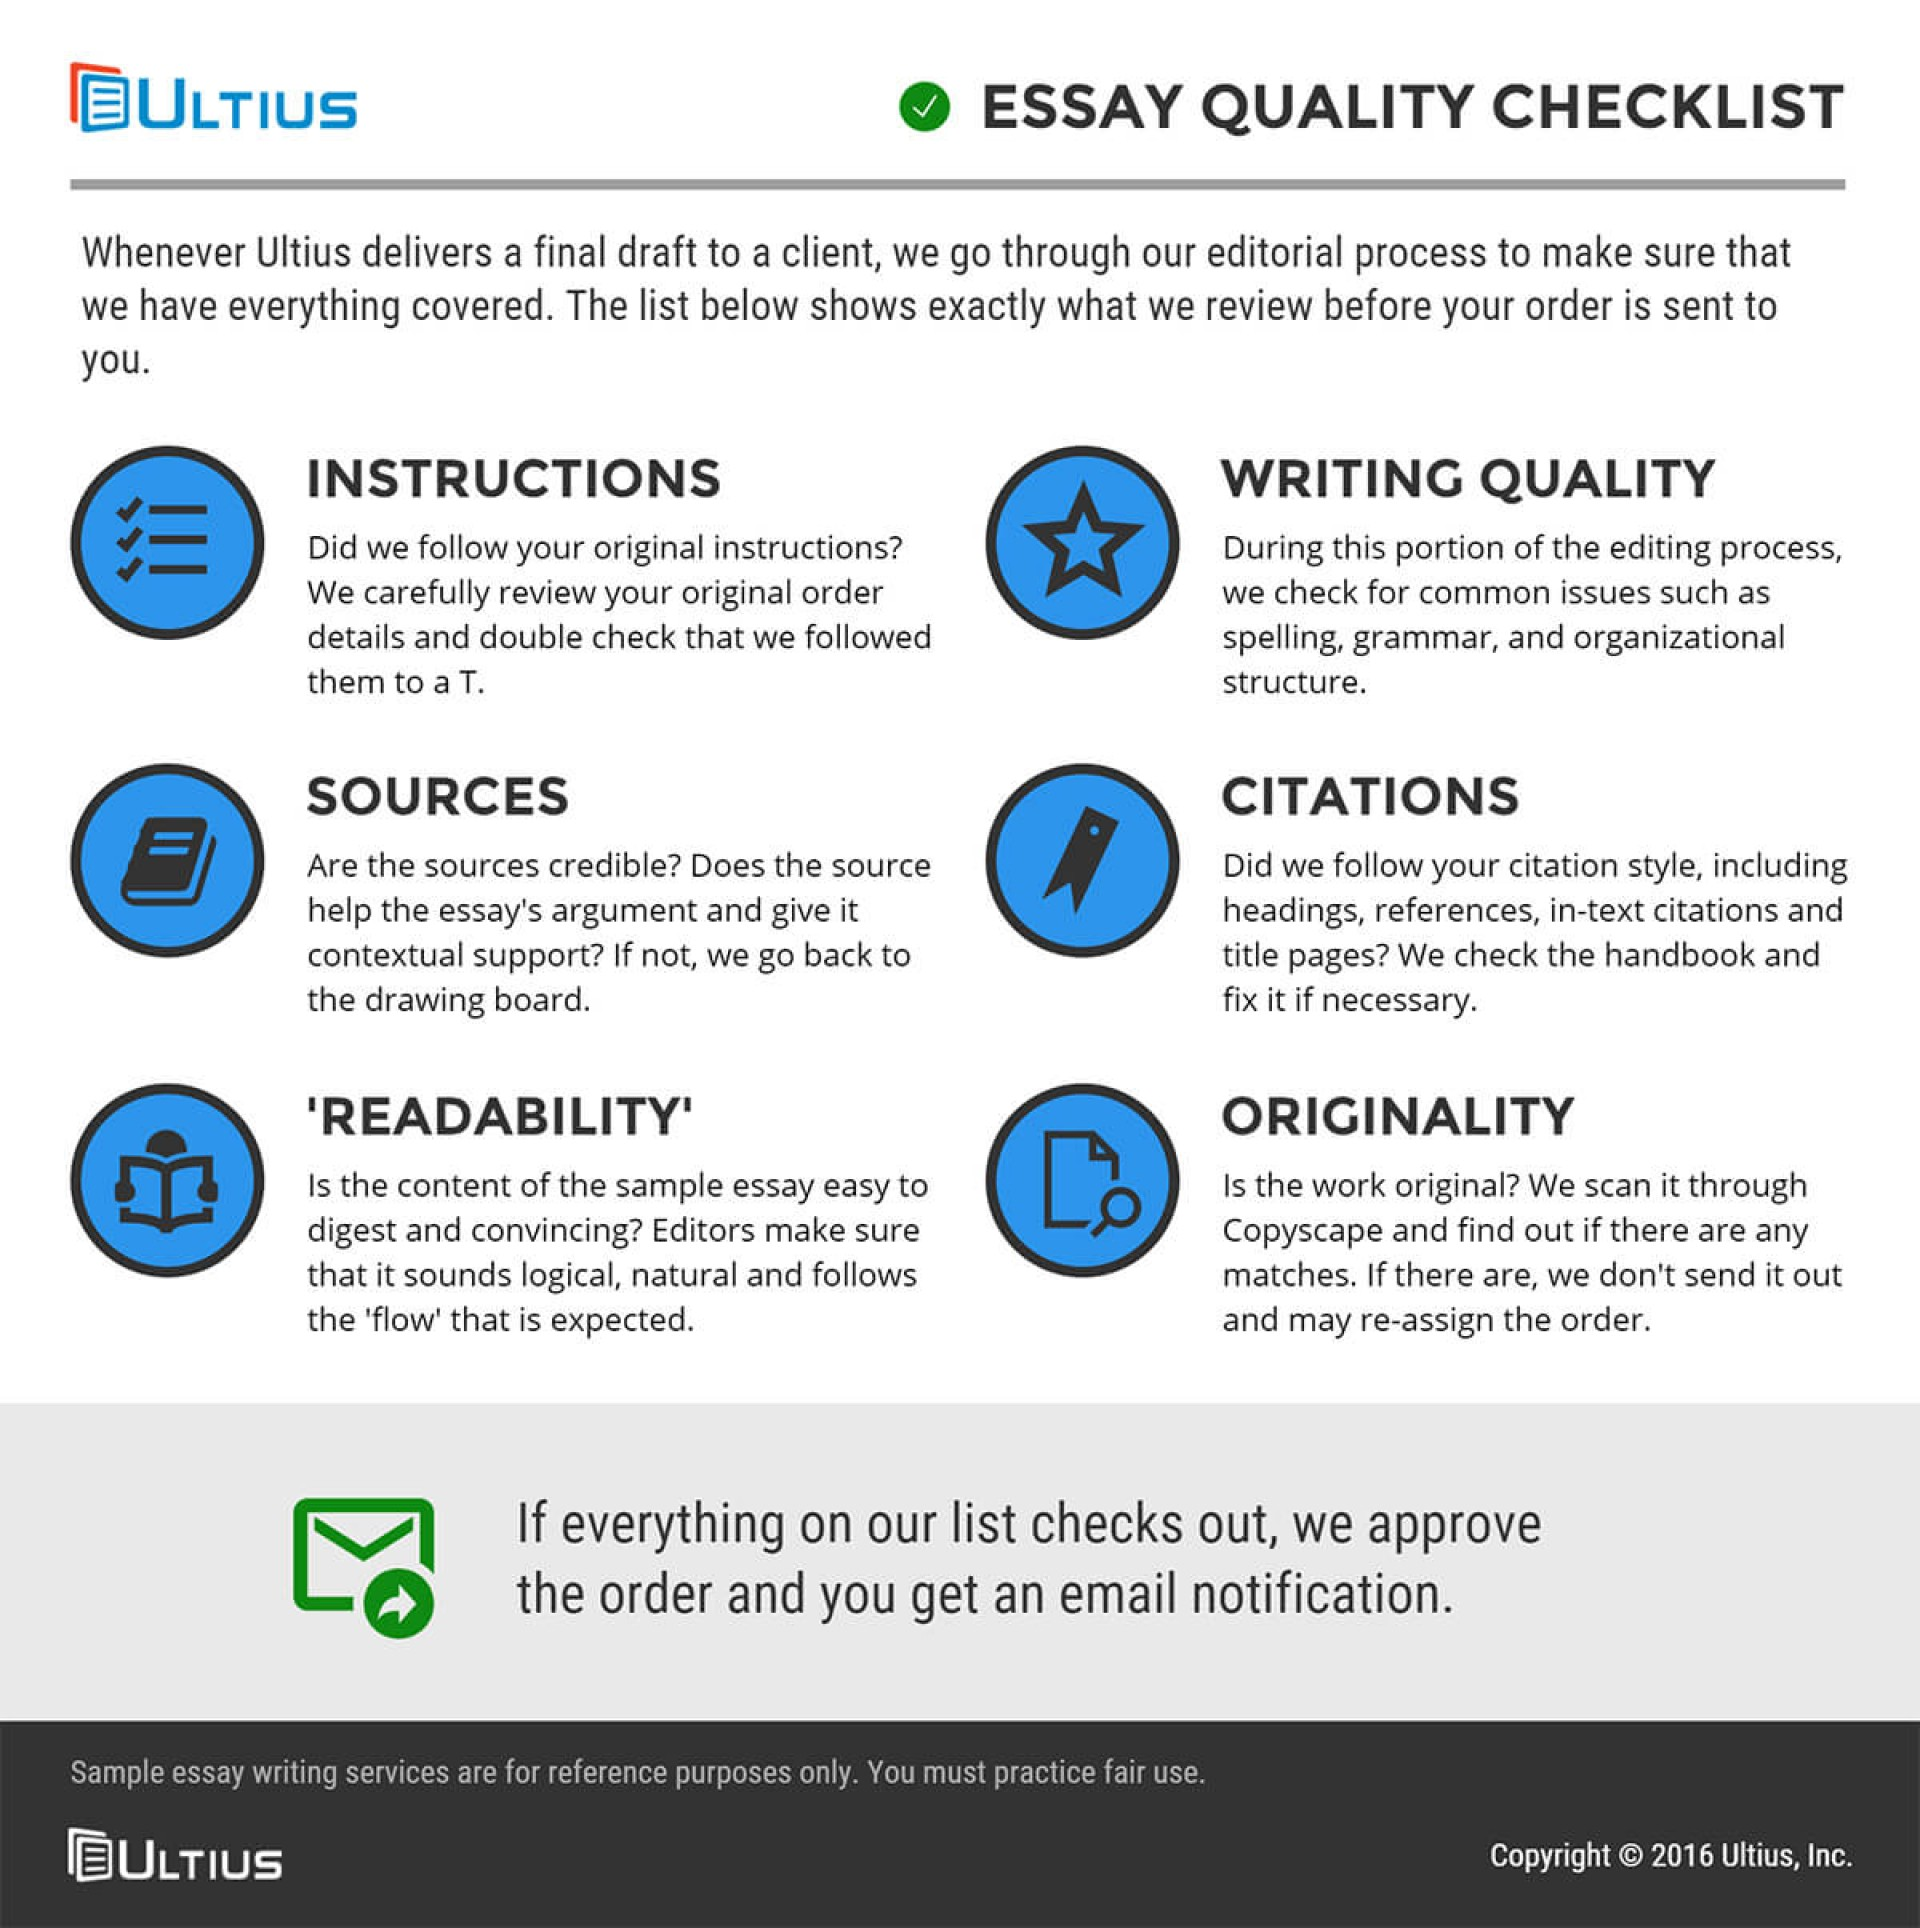 001 Essay Example Quality Checklist Buy Sensational Online Safe Reviews Login 1920